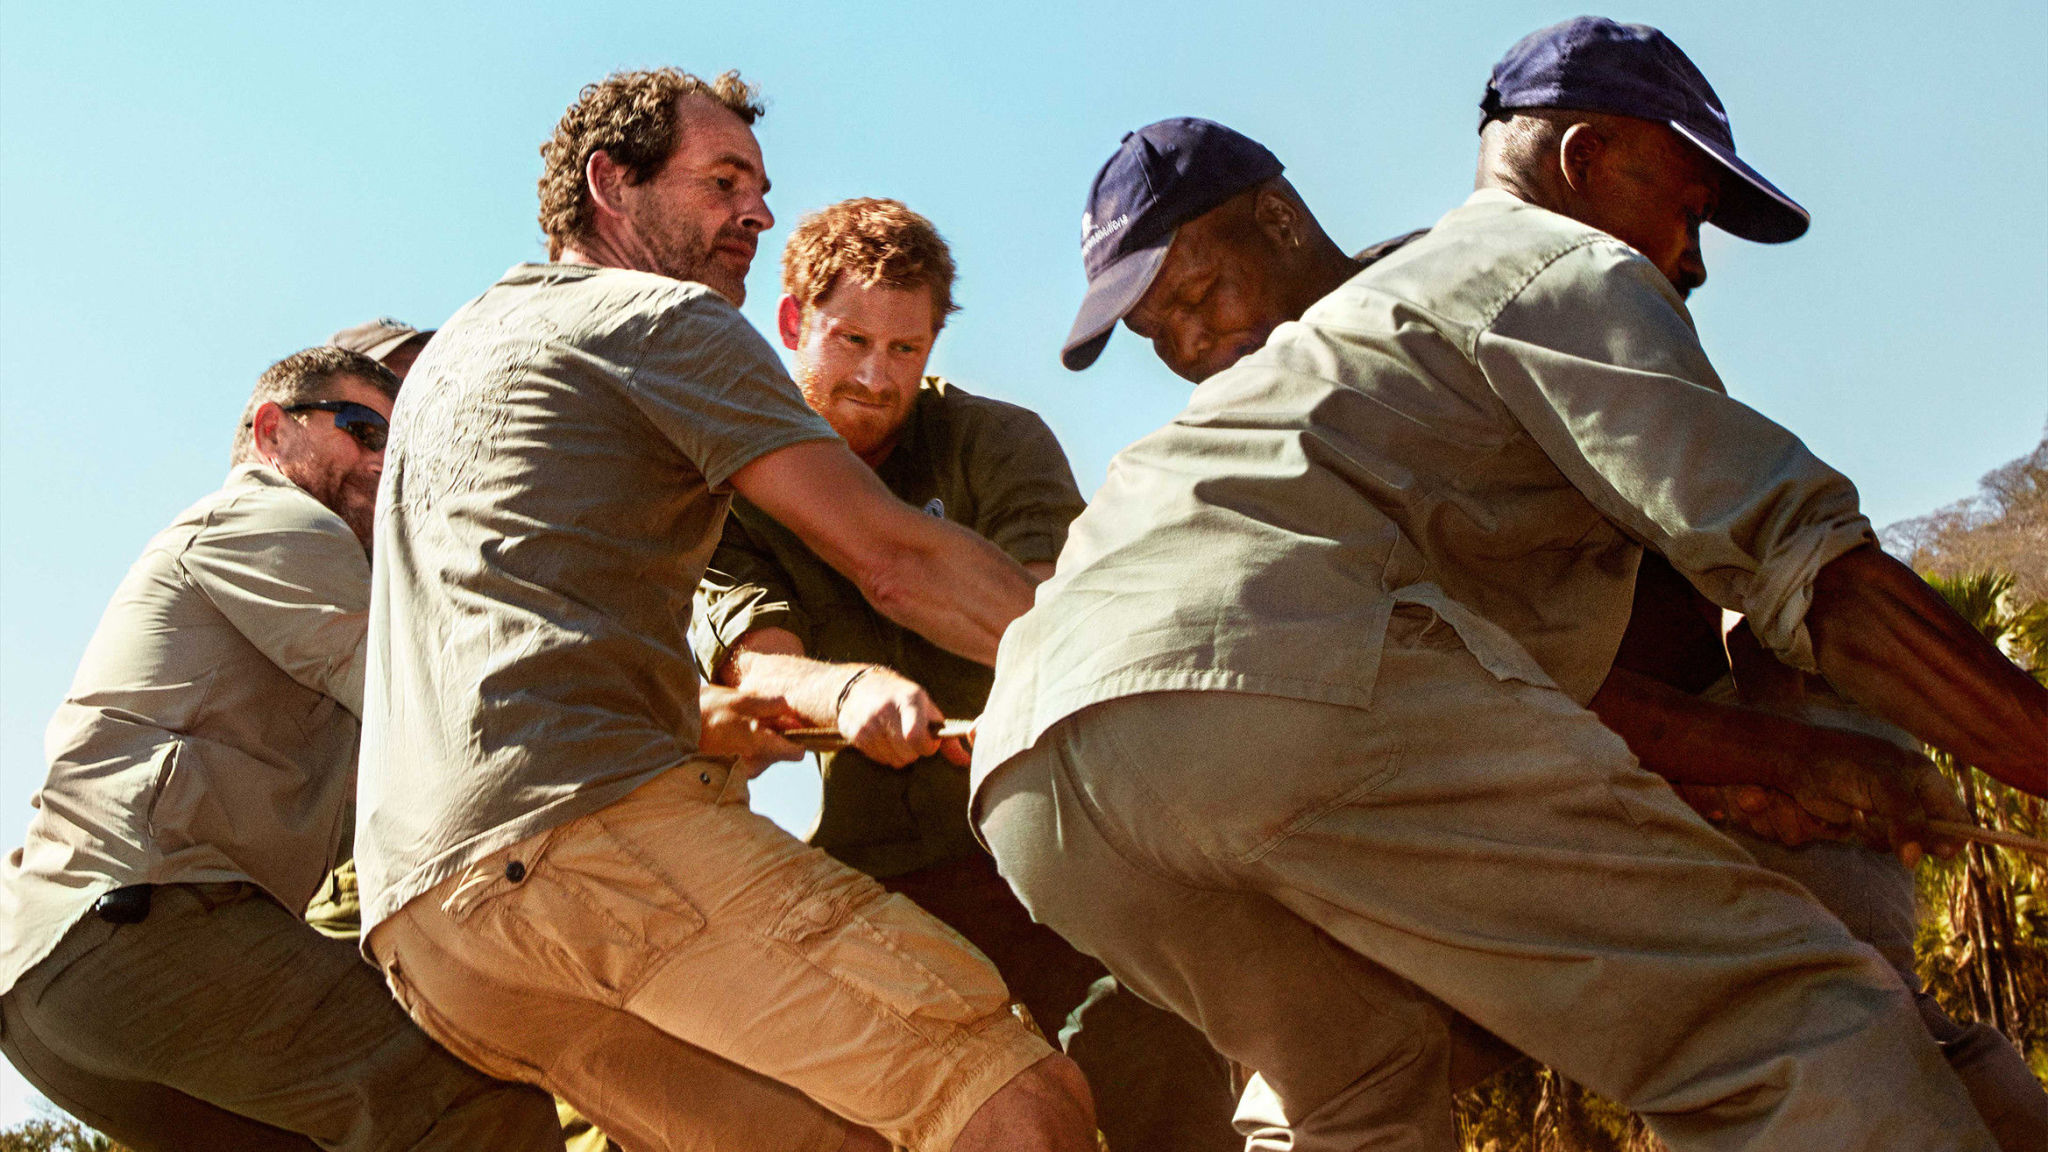 Prince Harry gets his hands dirty on a volunteering project in Africa, contact us for similar opportunities.